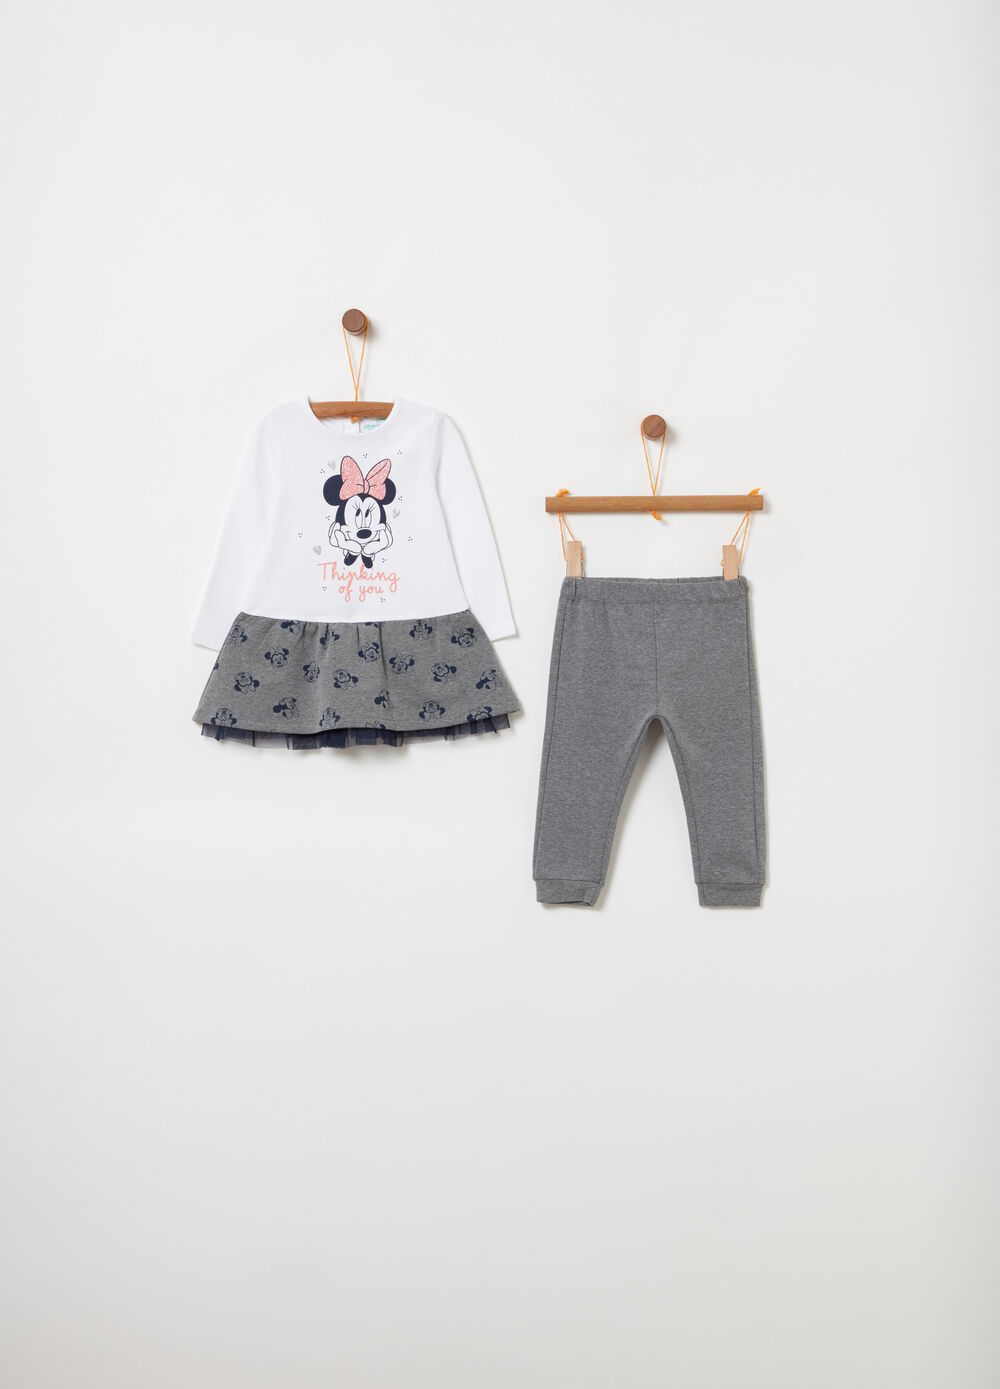 Dress and legging set in tulle with Minnie Mouse print